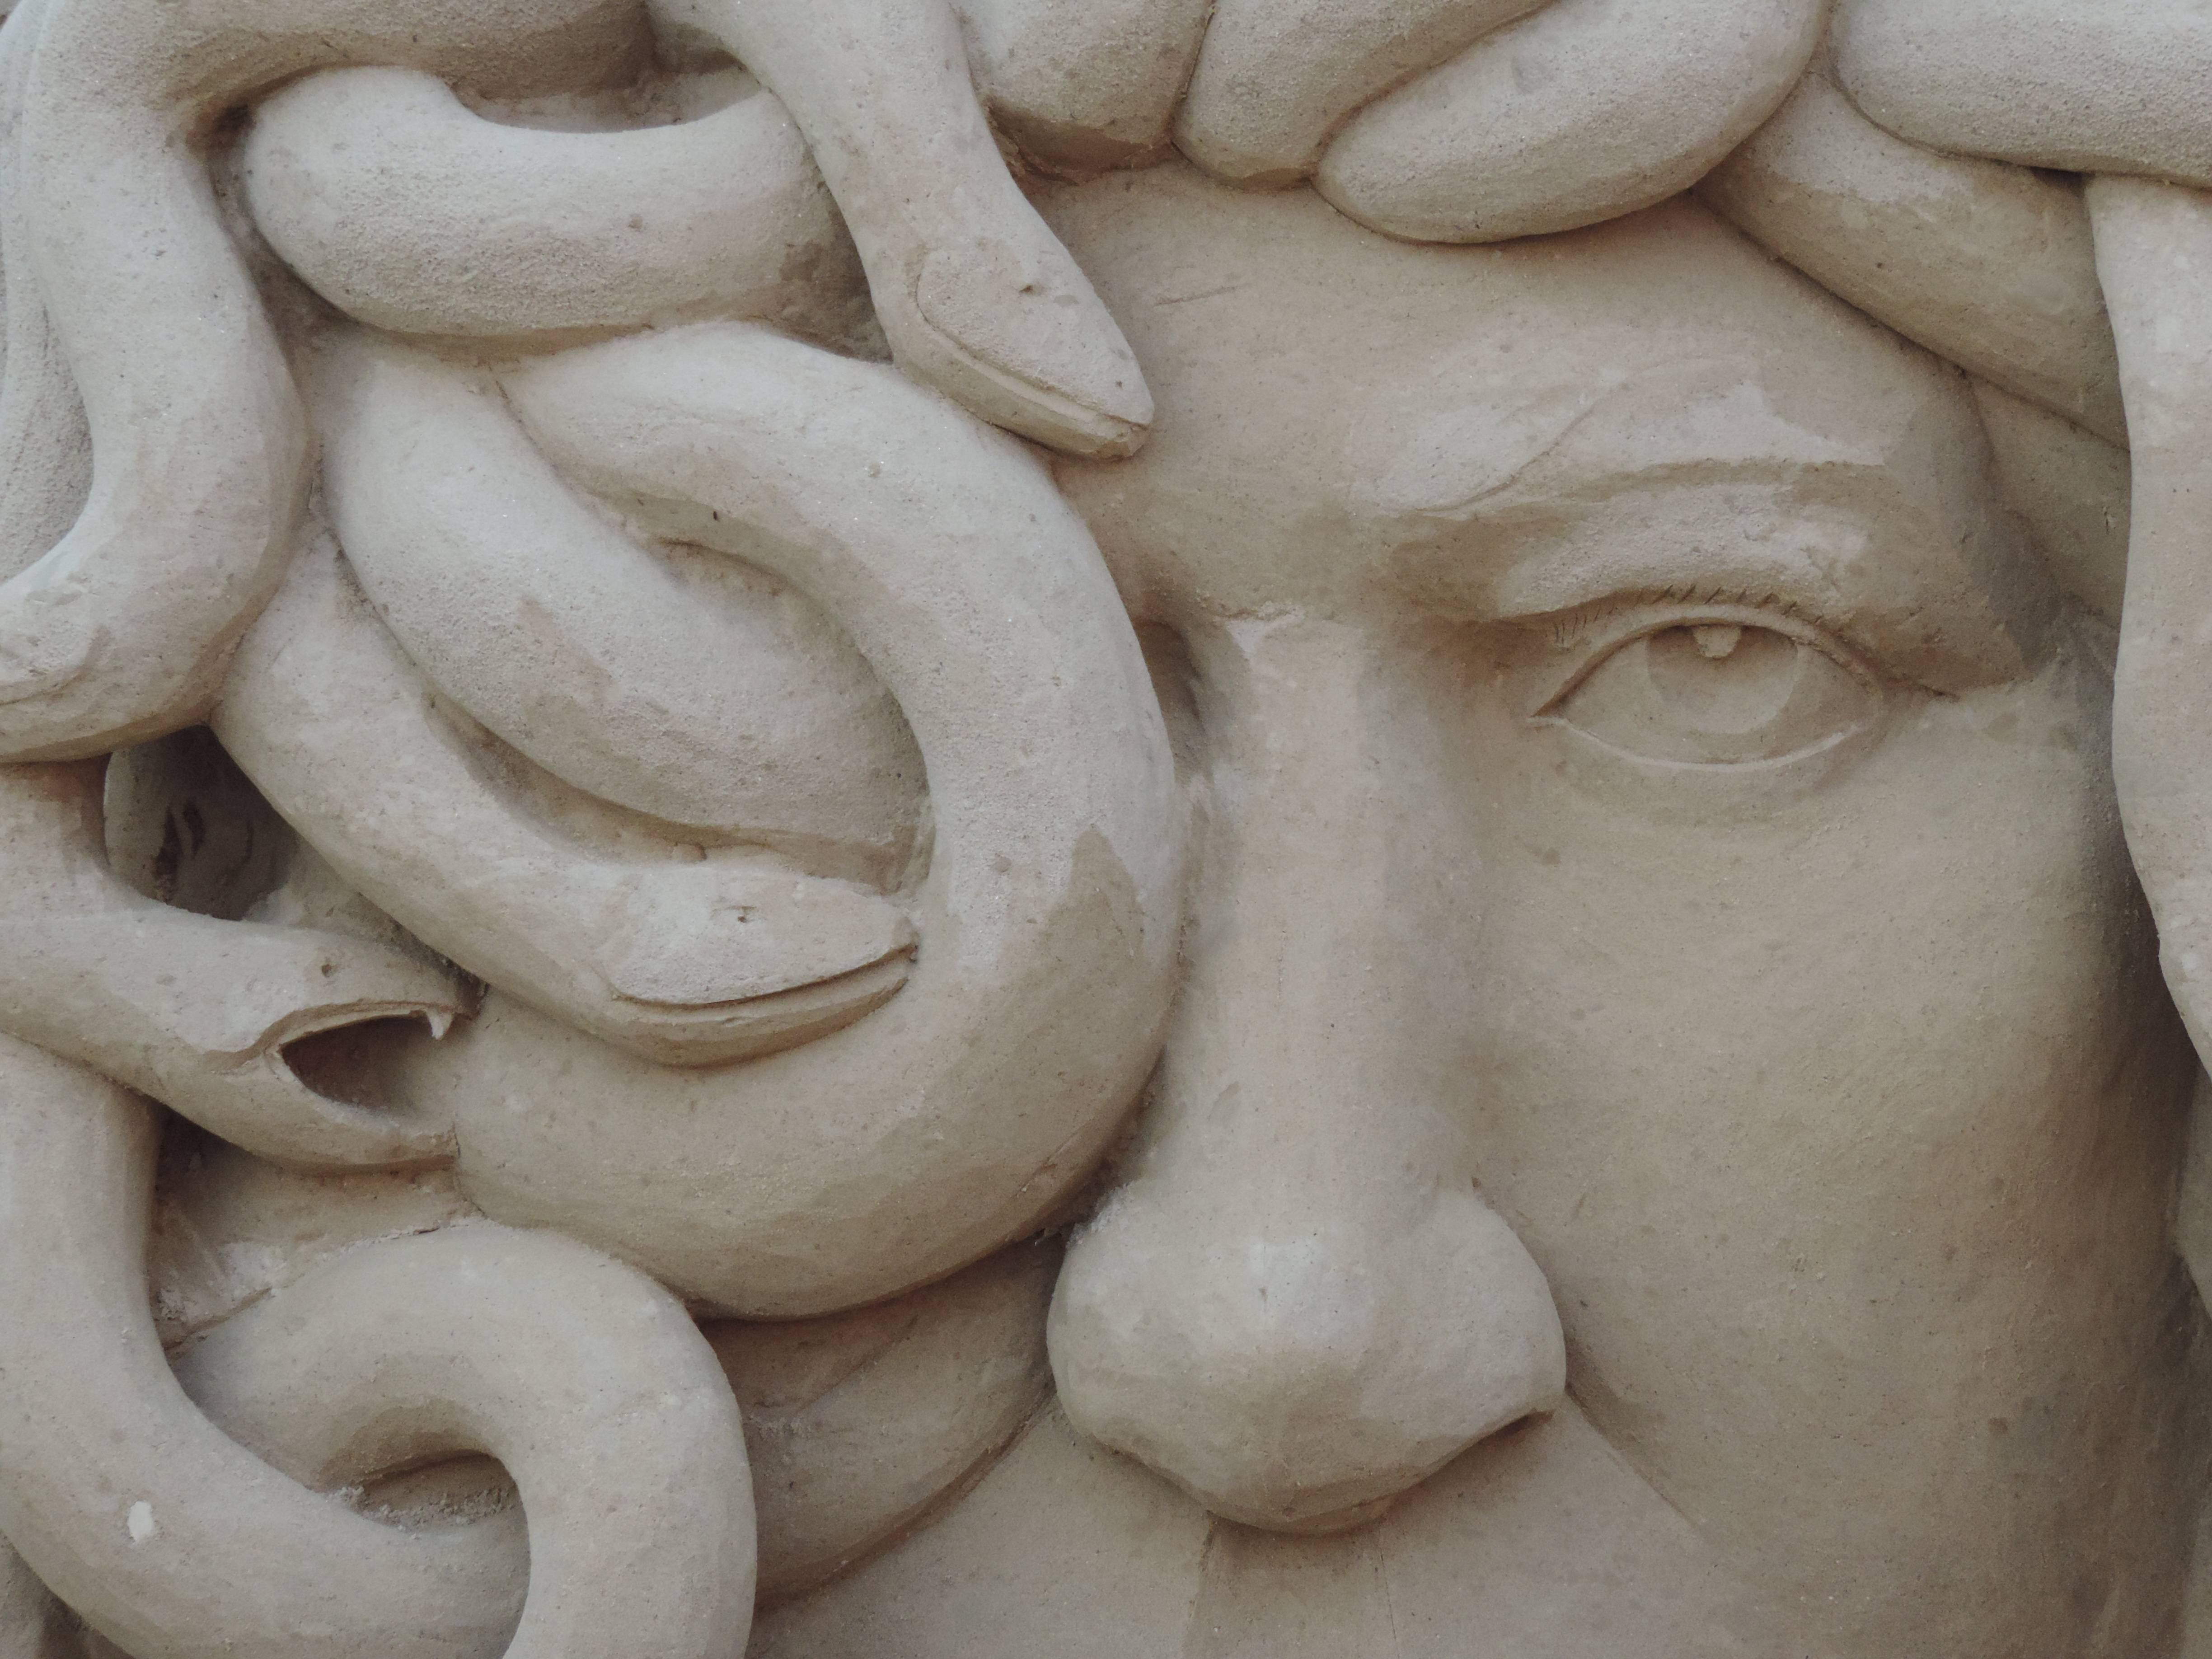 This was a sand sculpture of Medusa from River Fest a few weeks ago. I thought the texture of the sand and all of the lines of the snakes made for a great shot!